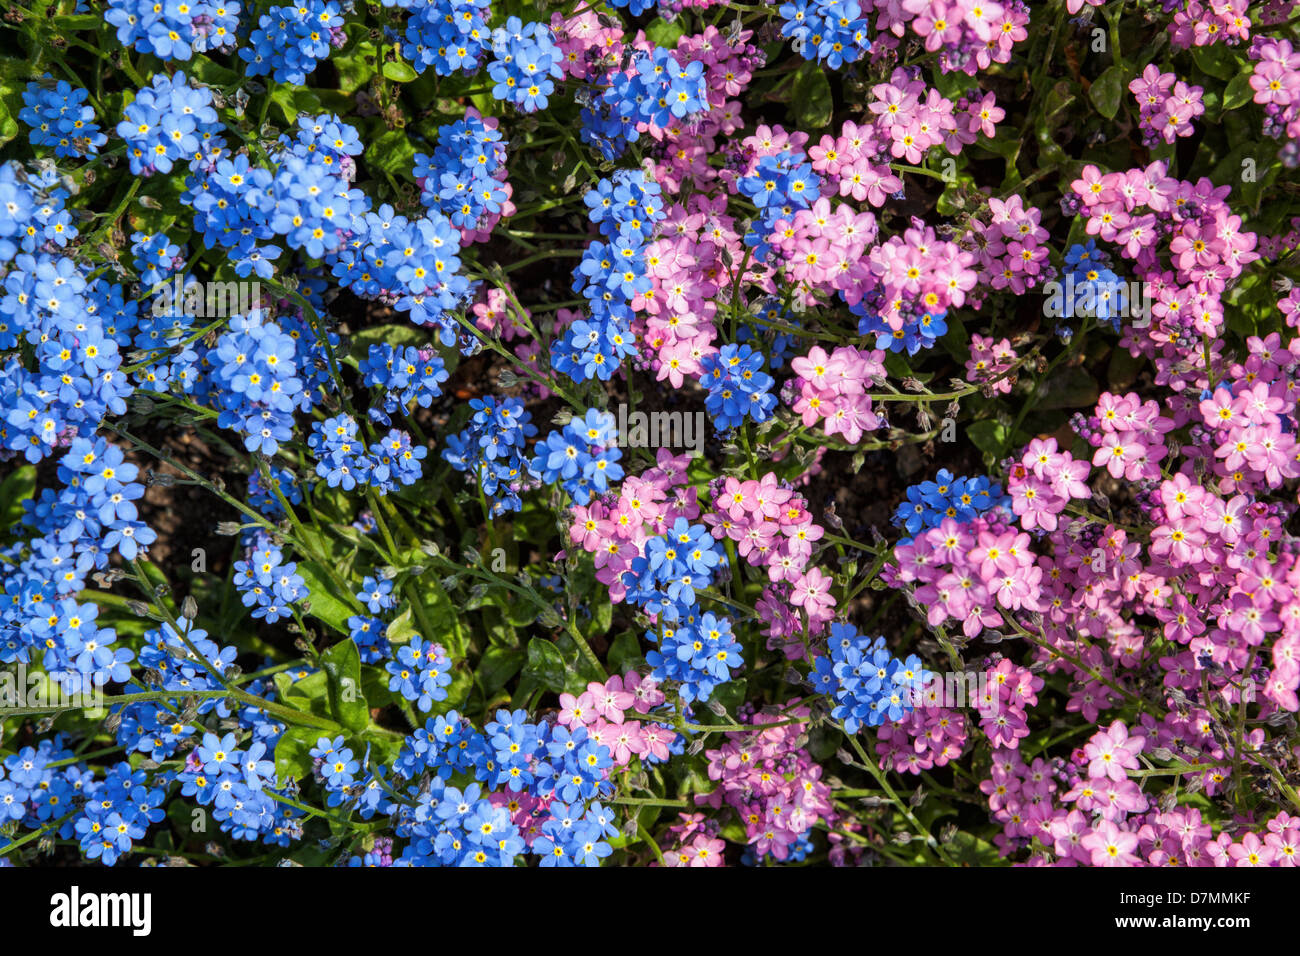 Myosotis stock photos myosotis stock images alamy pink and blue forget me not myosotis flowers in spring stock mightylinksfo